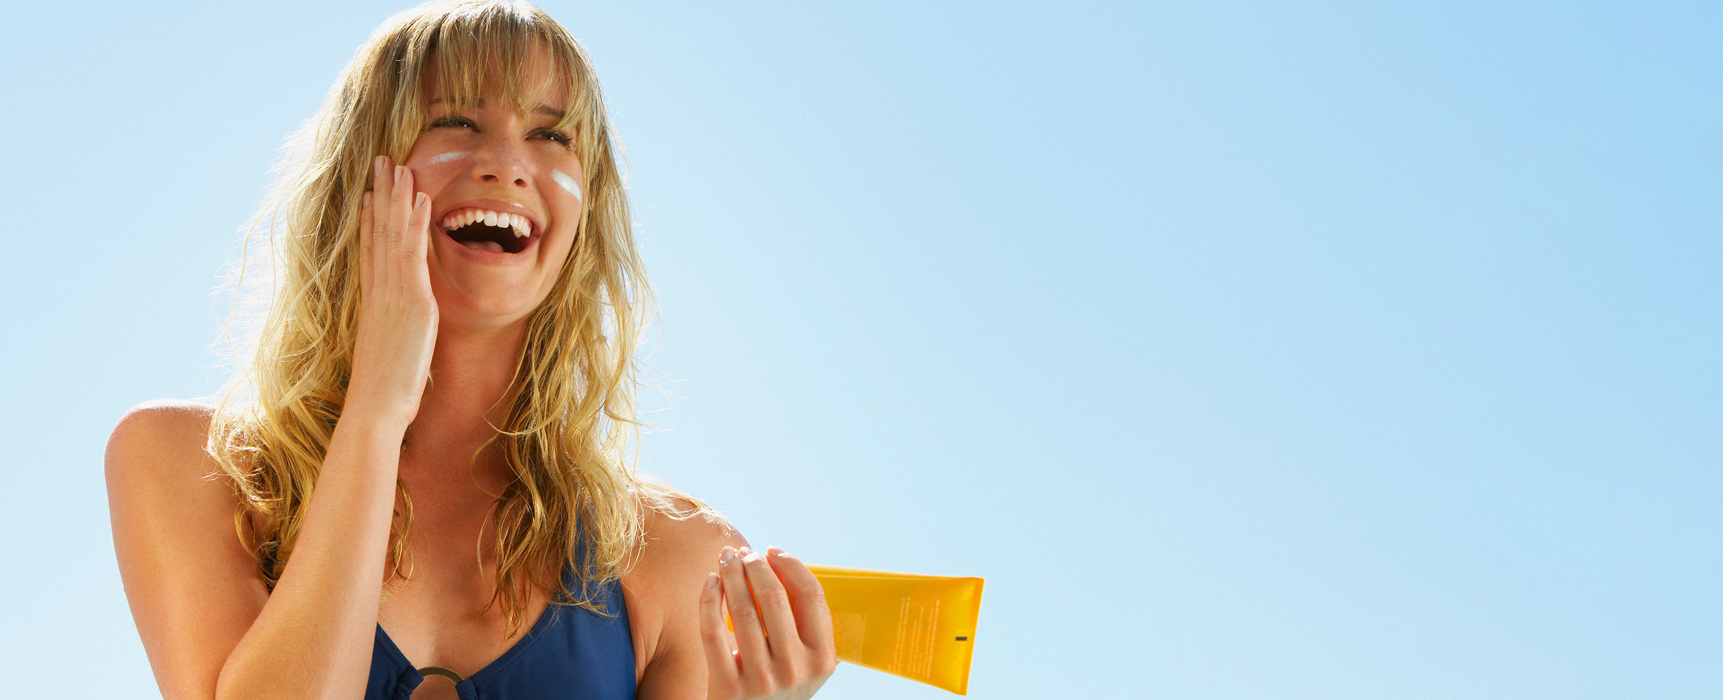 5 Must-have Products for Summer